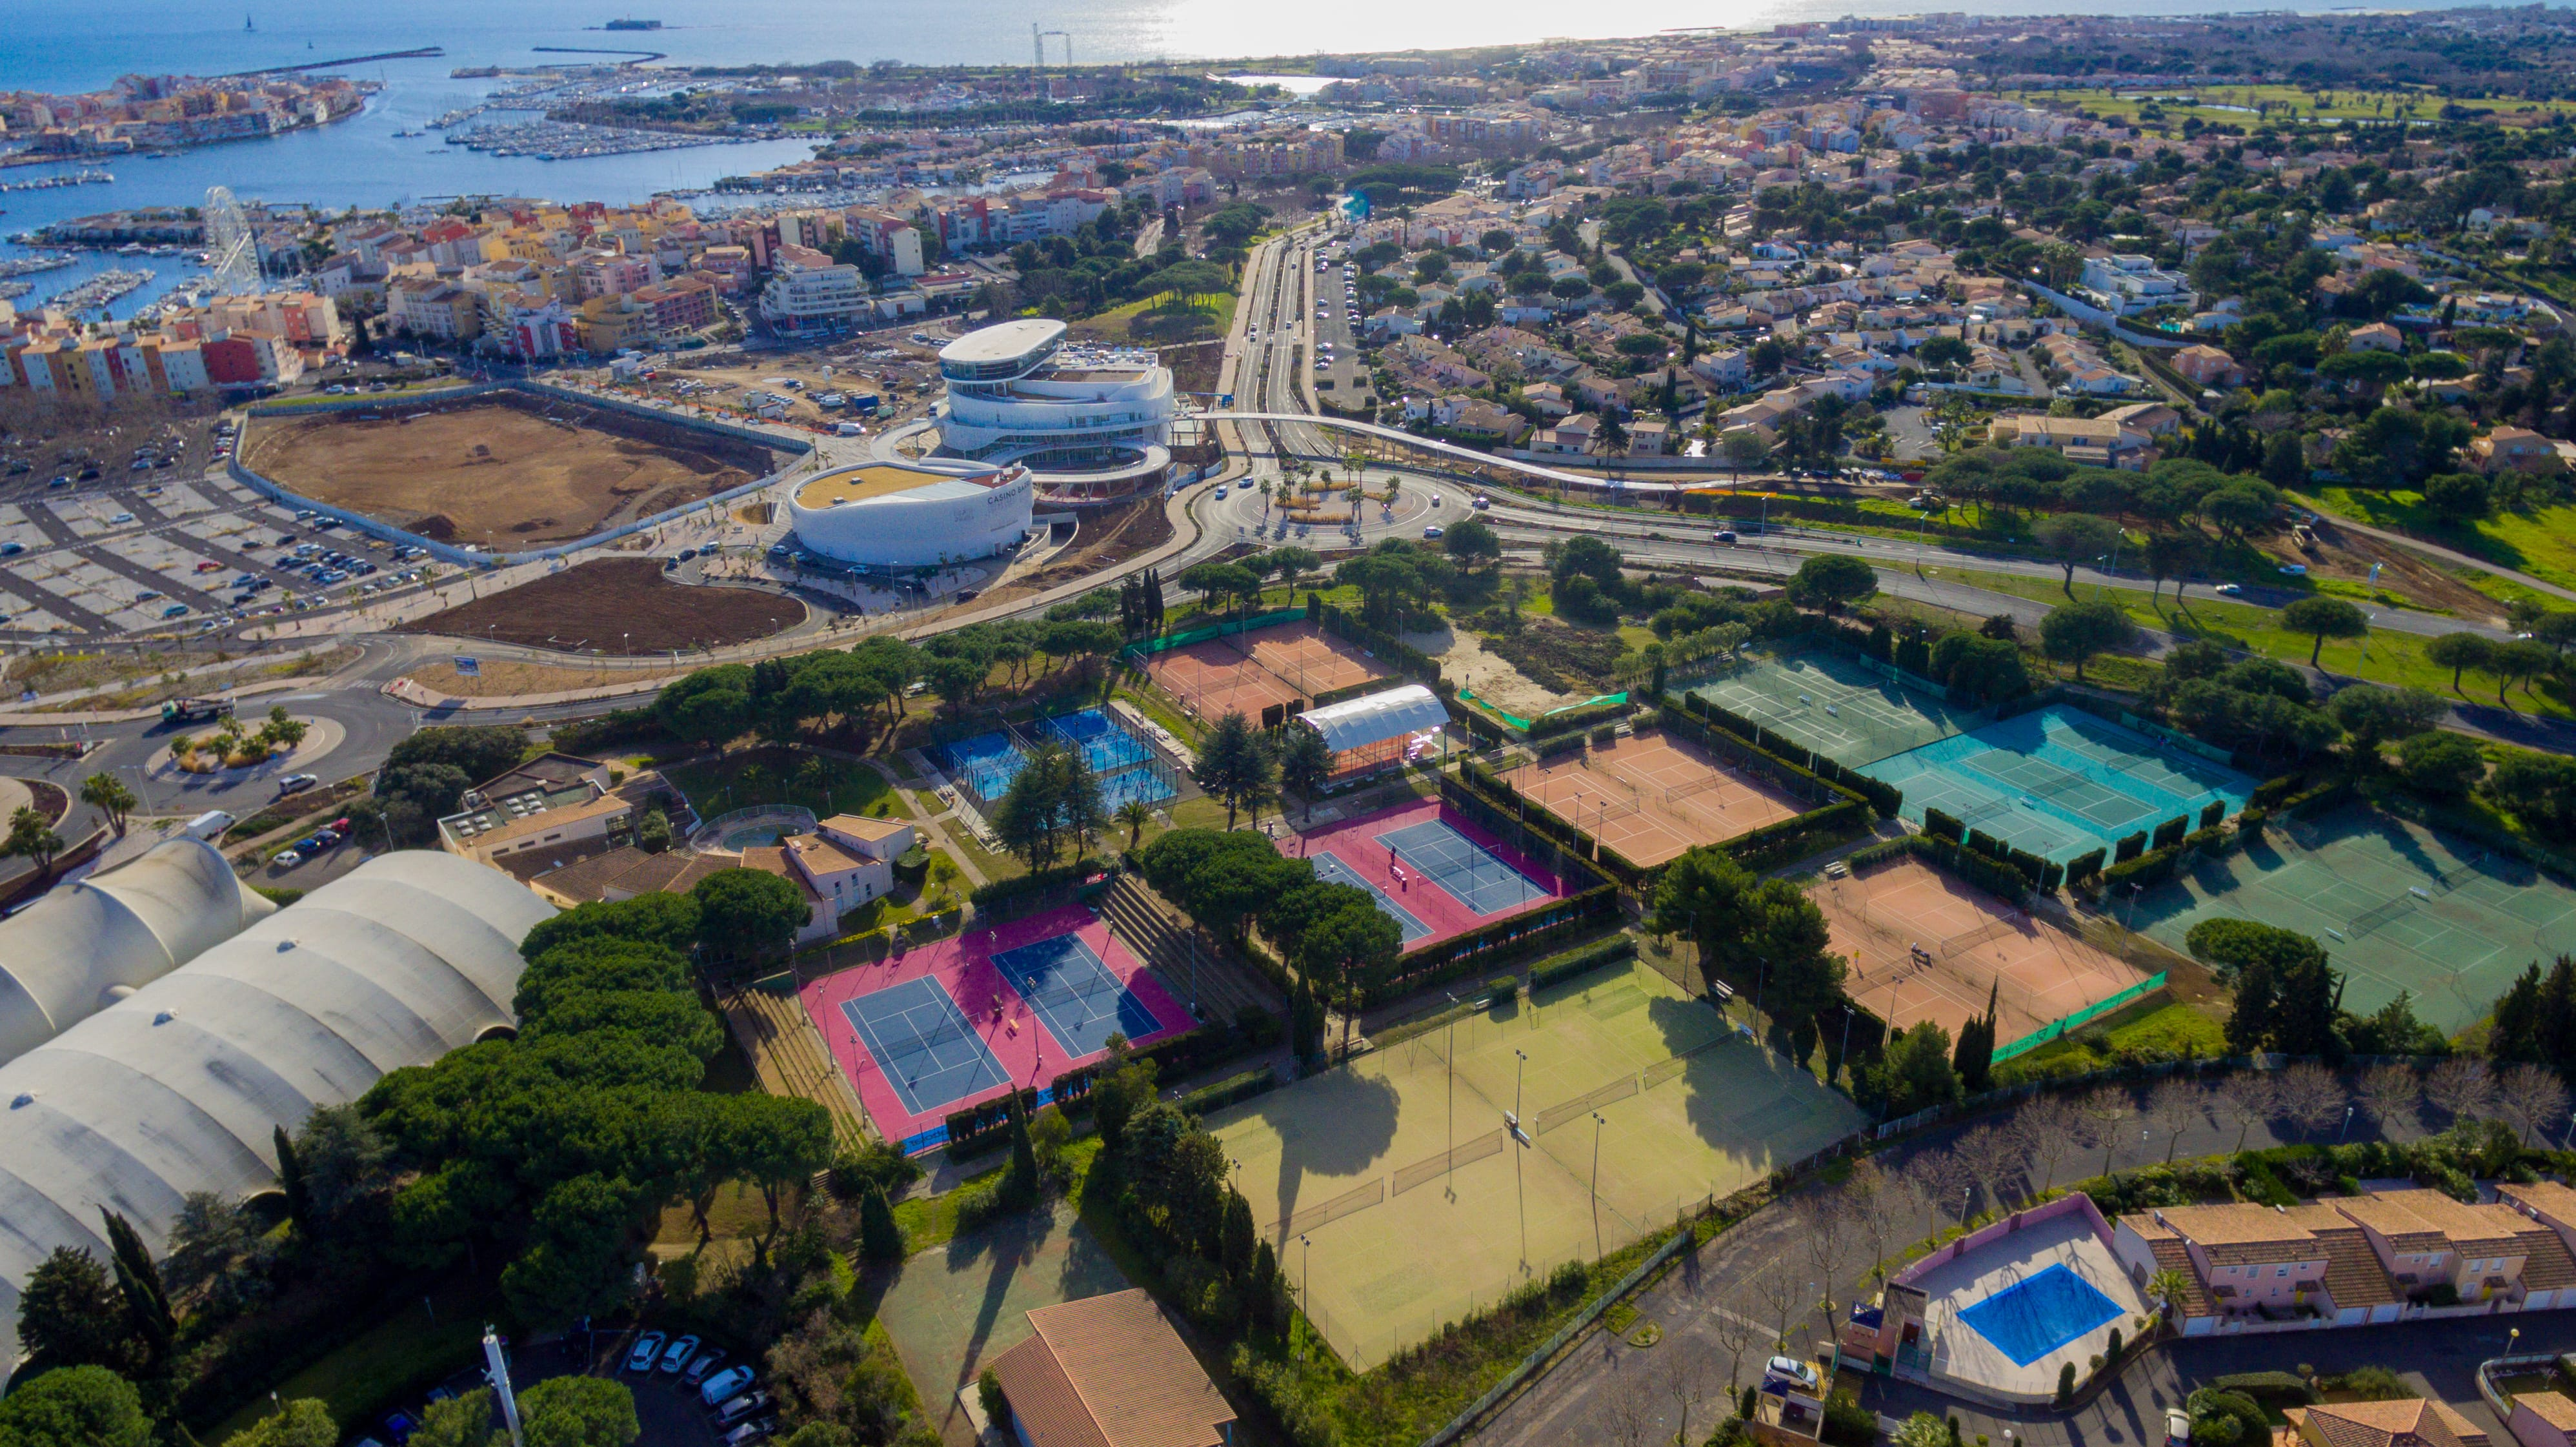 The international Tennis Center of Cap d'Agde, located in the South of France